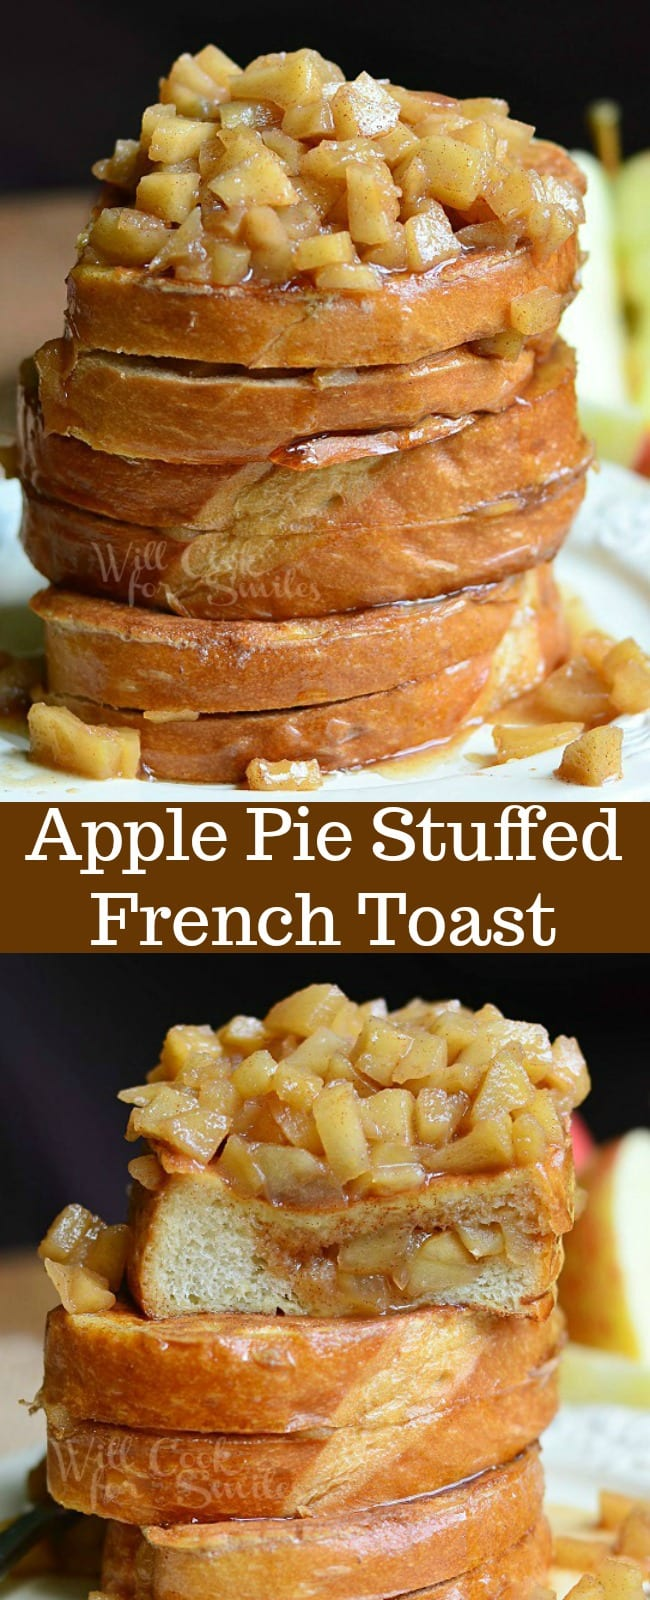 collage 1st picture Apple Pie Stuffed French Toast Recipe bottom picture cut french toast